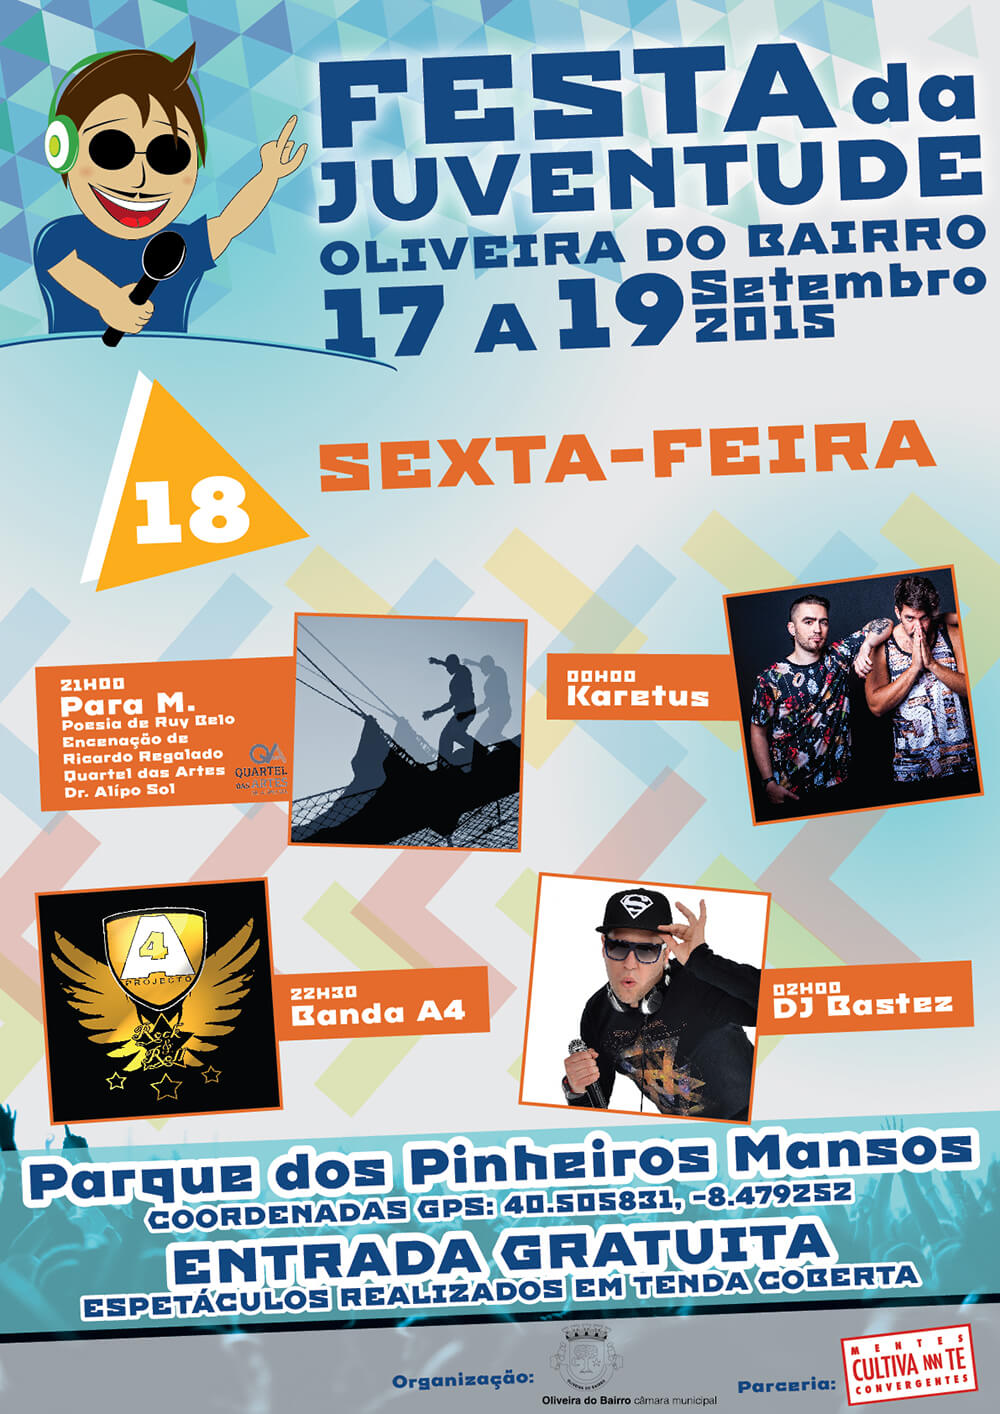 Festa da Juventude de Oliveira do Bairro - Poster for the 18th day | Luis Serra Freelancer